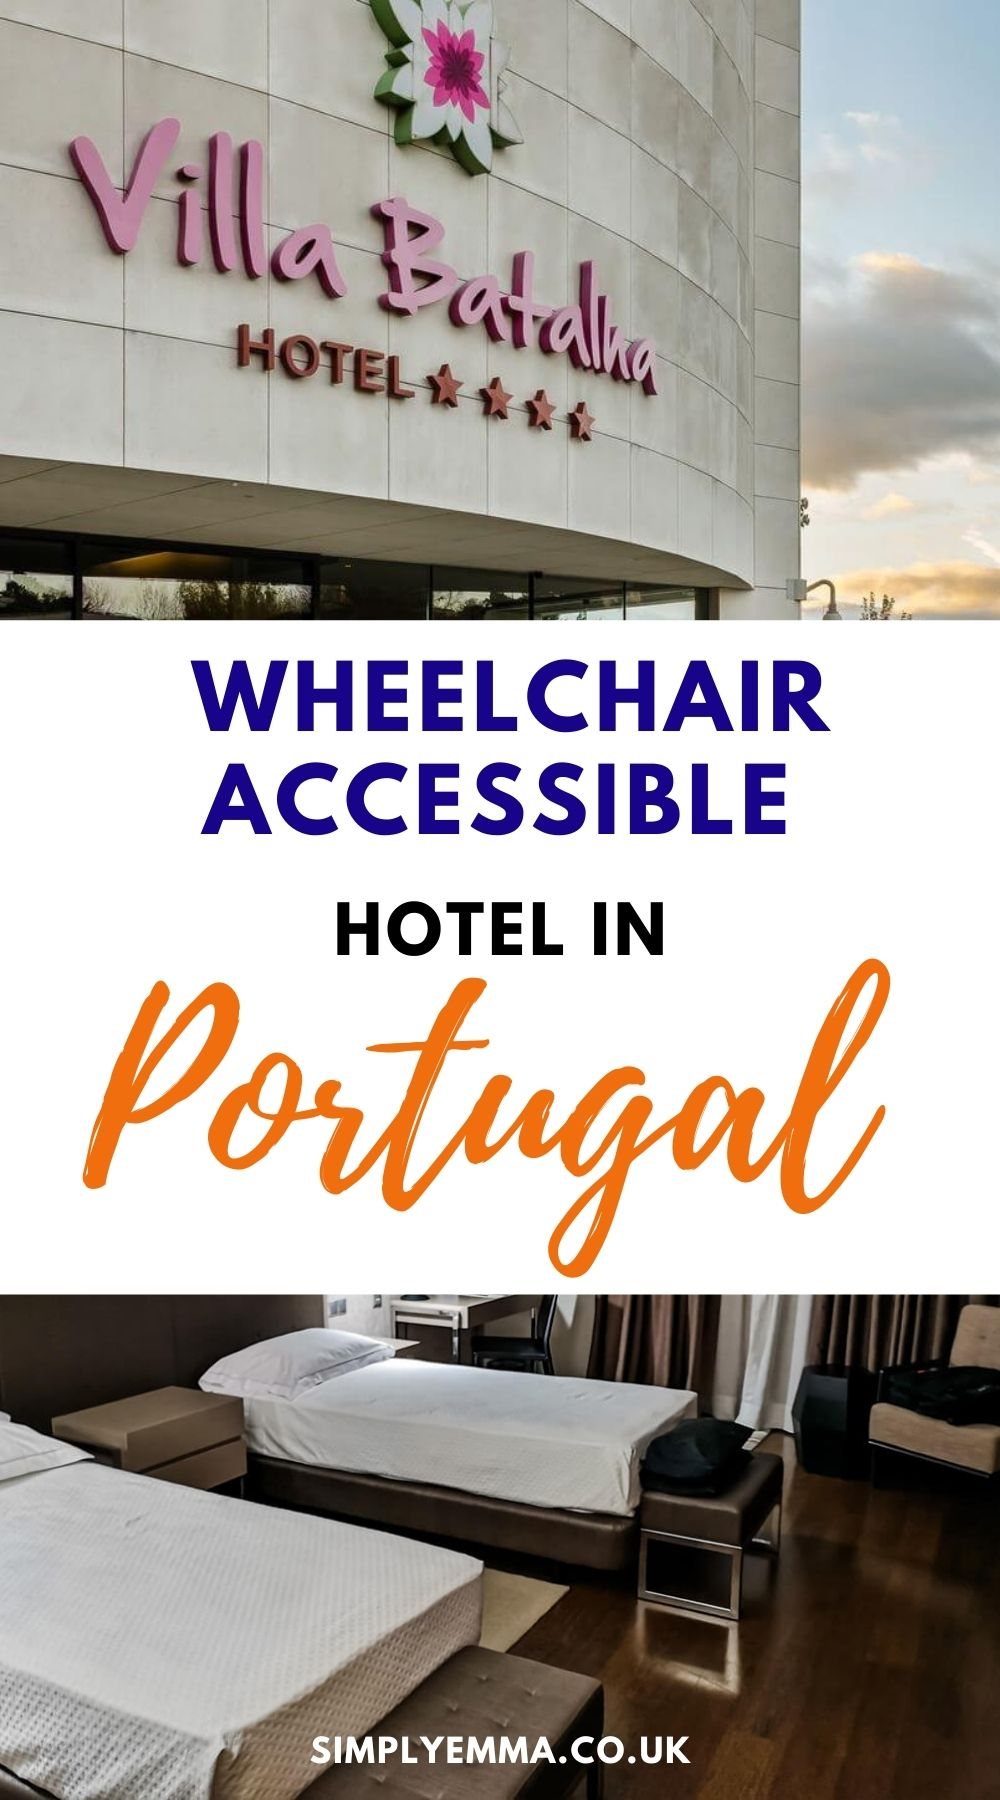 """Wheelchair accessible hotel in Portugal"" in a text box with an image of the hotel exterior and the bedroom."